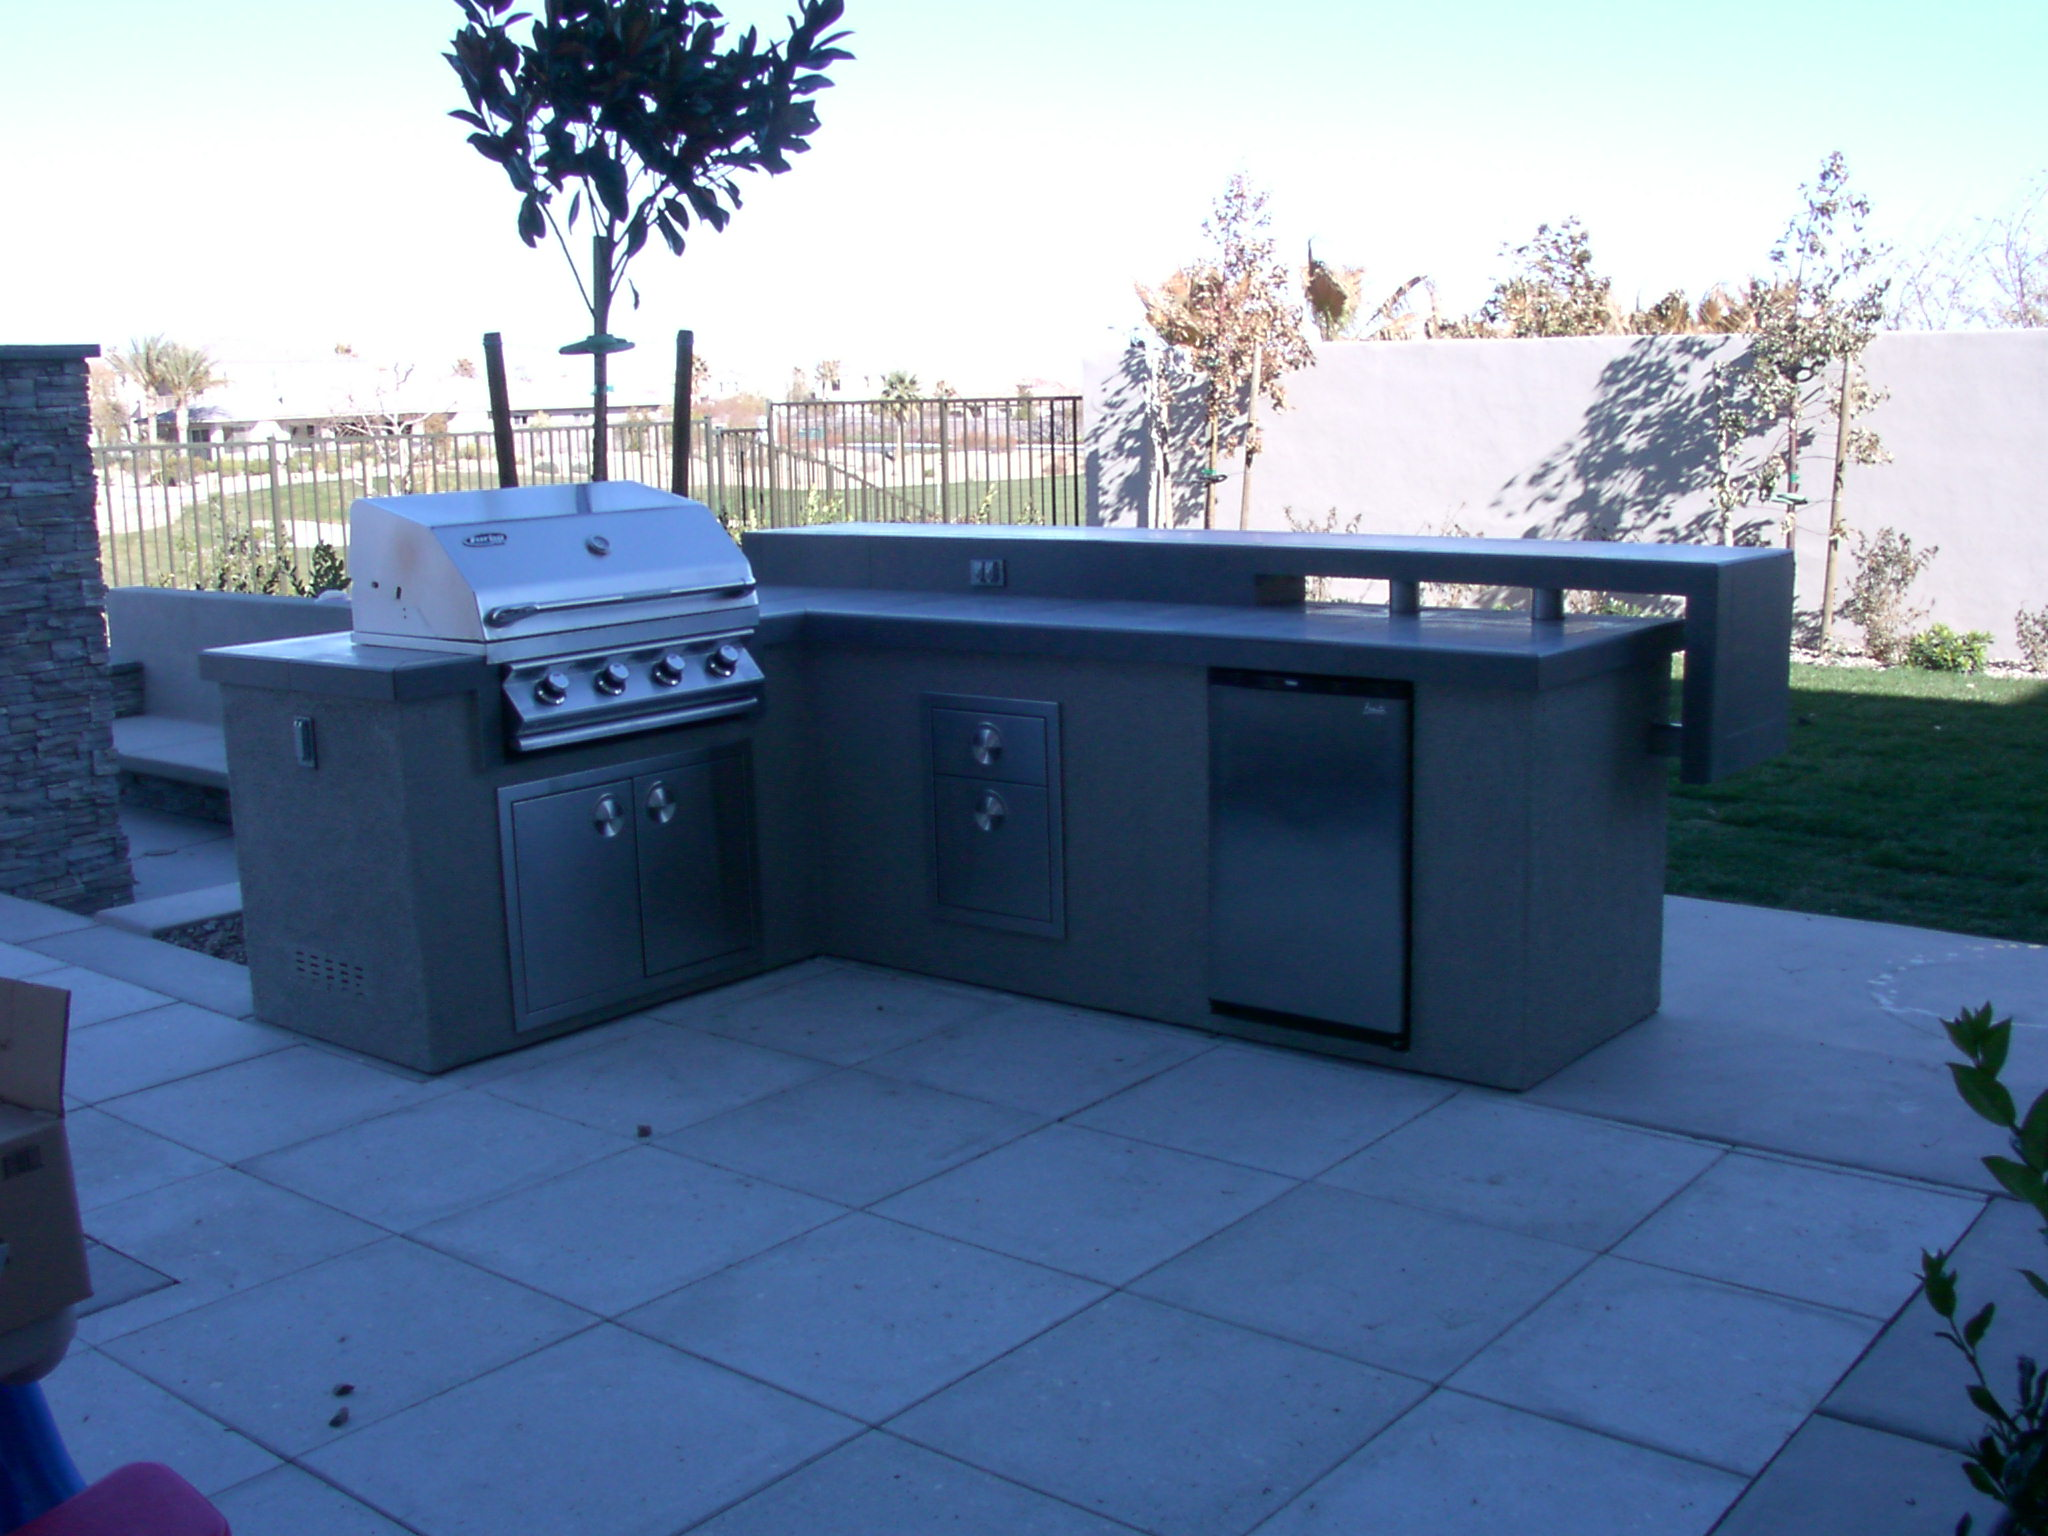 Custom Outdoor Kitchen Design By Nevada Outdoor Living Las Vegas Outdoor Kitchens And Barbecues